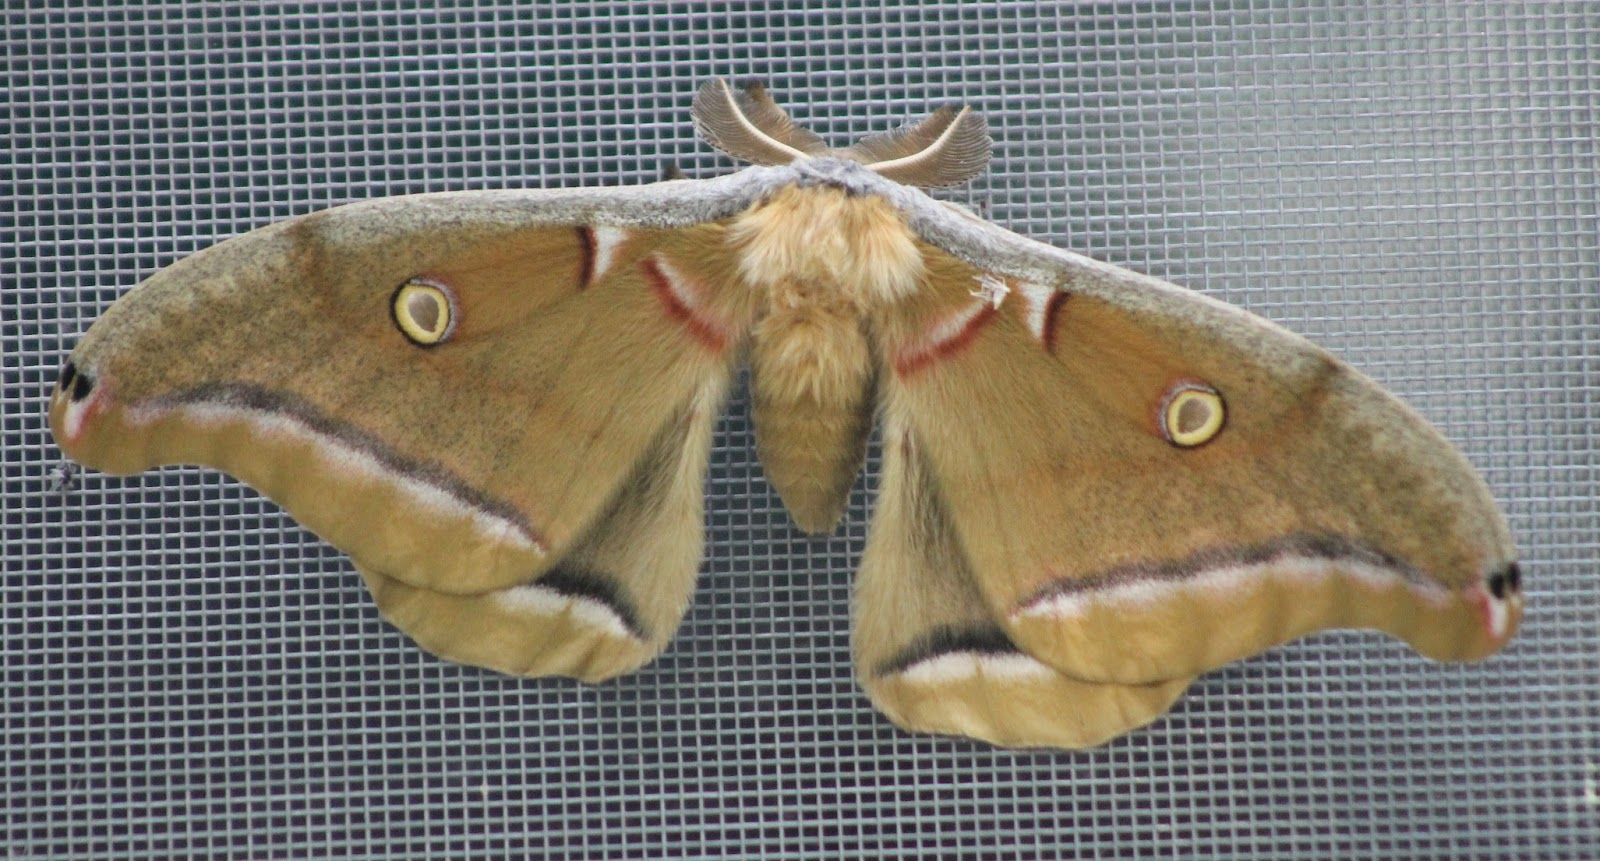 This Past Sunday, My Family And I Awoke To Find A Gigantic Moth On The  Outside Of Our Kitchen Window. It Was A Polyphemus Moth, The Largest U2013 And  The Least ...